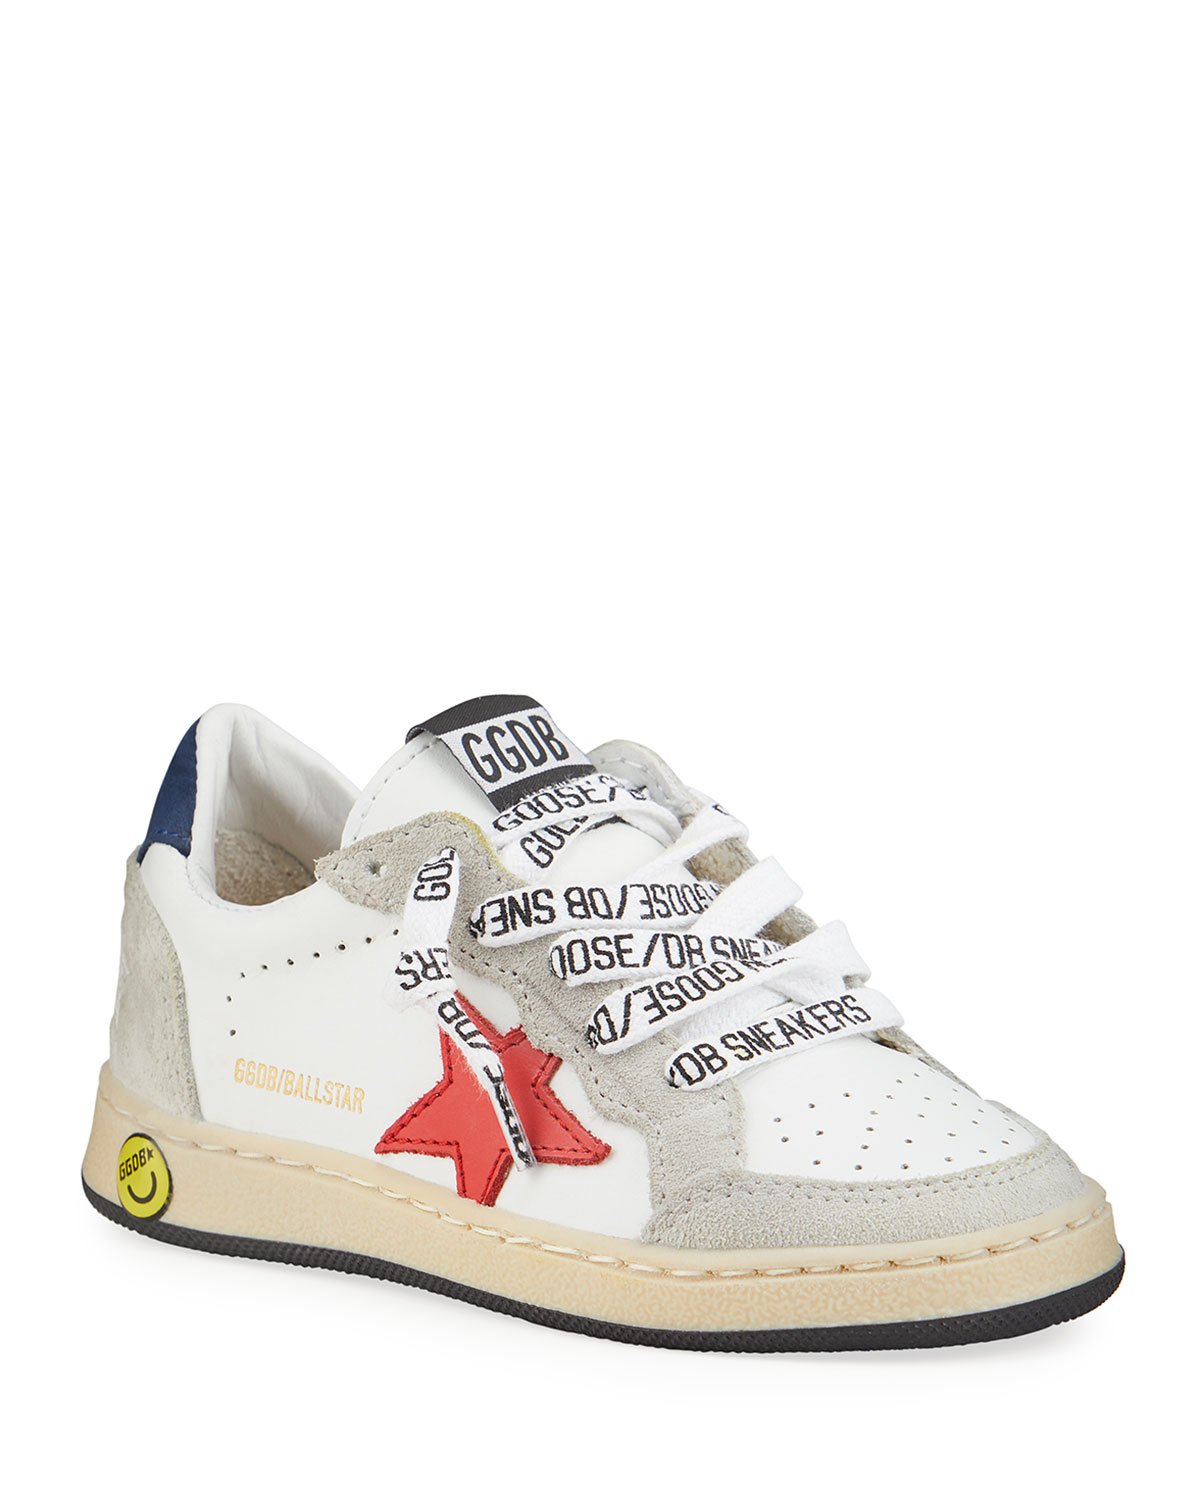 Golden Goose Ball Star Leather Low-Top Sneakers, Baby/Toddler